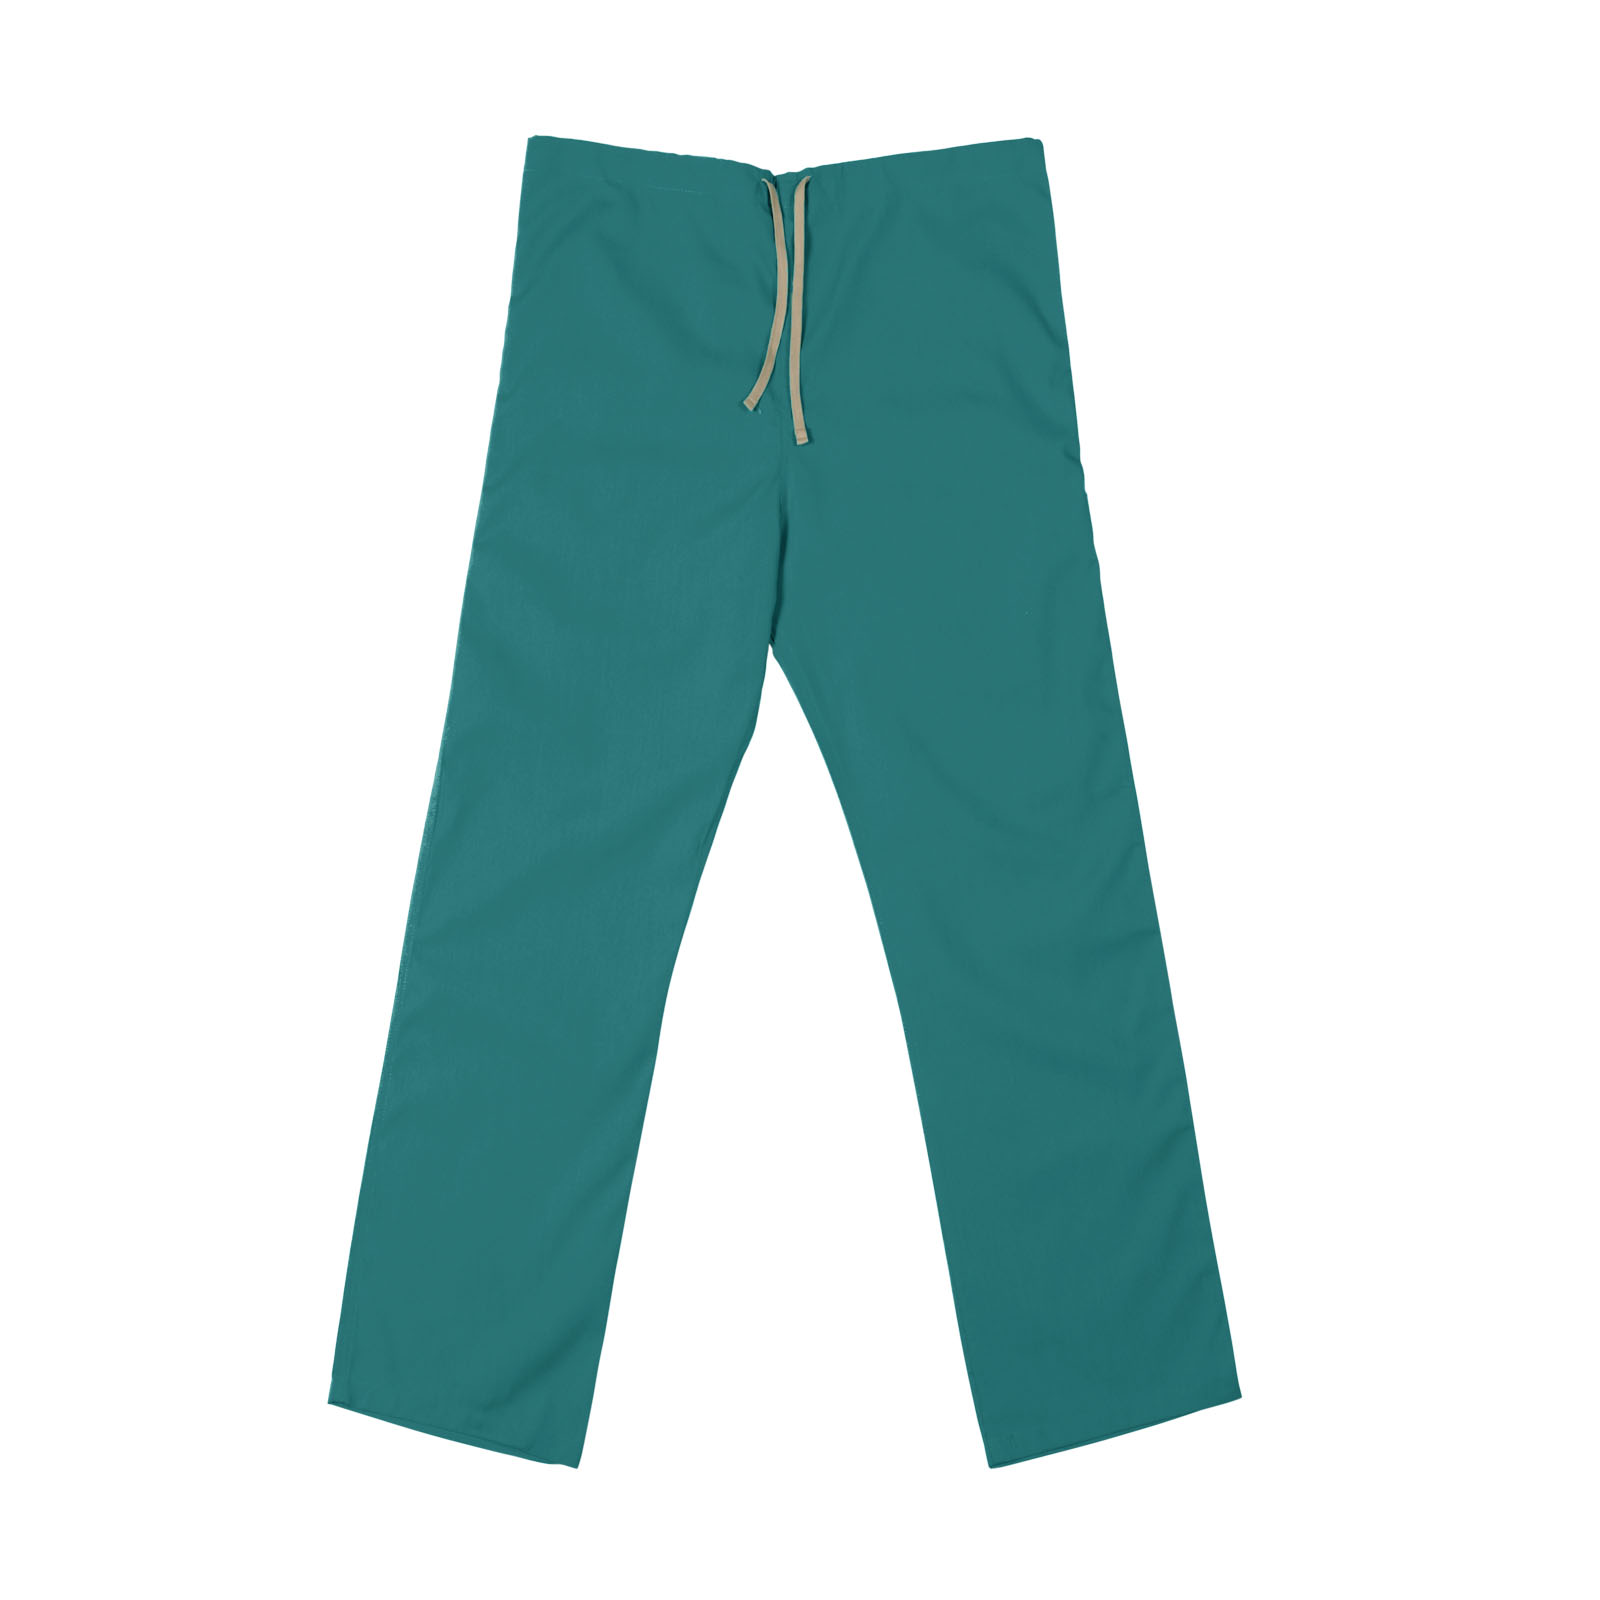 SP60U Teal - 65/35 Poly/Cotton Poplin Scrub Pant